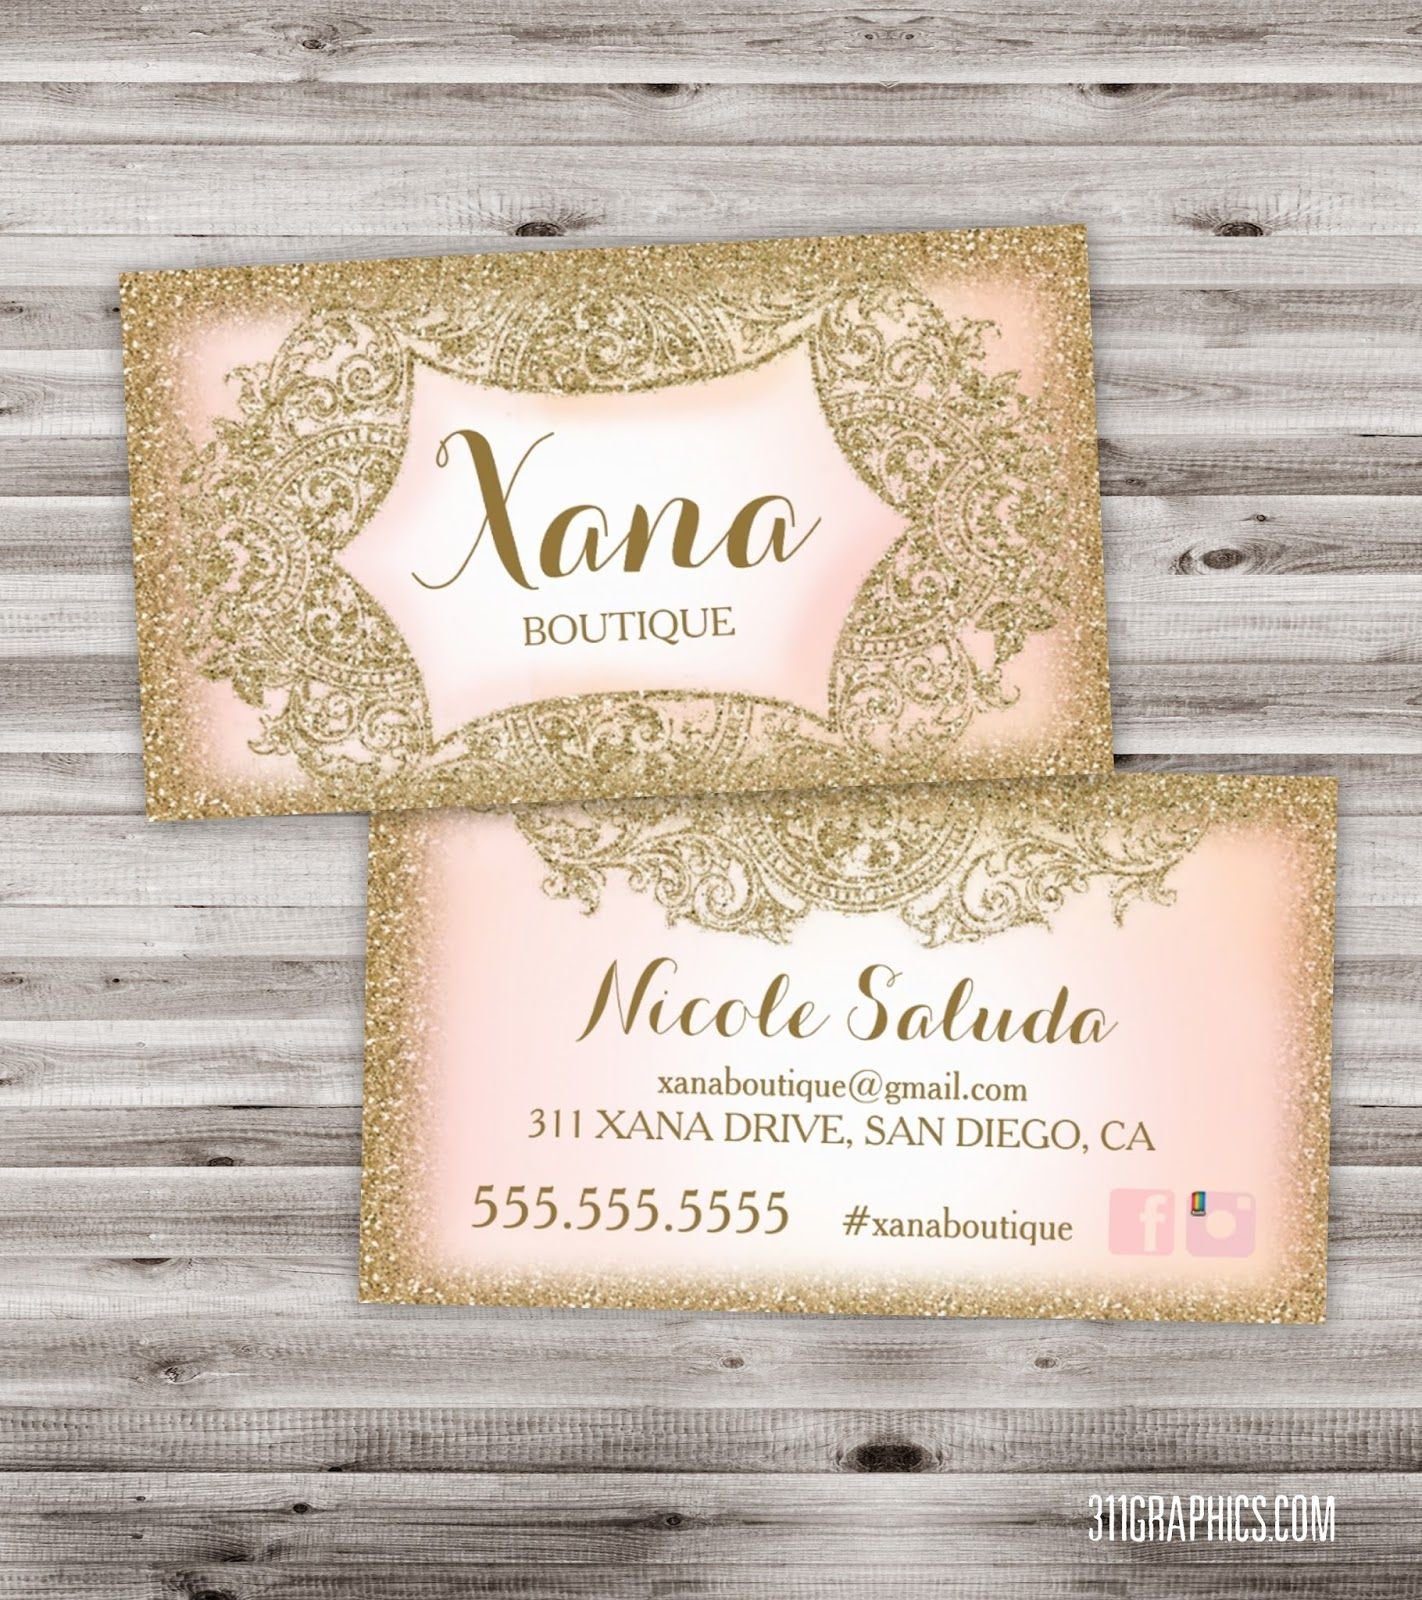 A glamorous black and gold cosmetologist business card with a gold